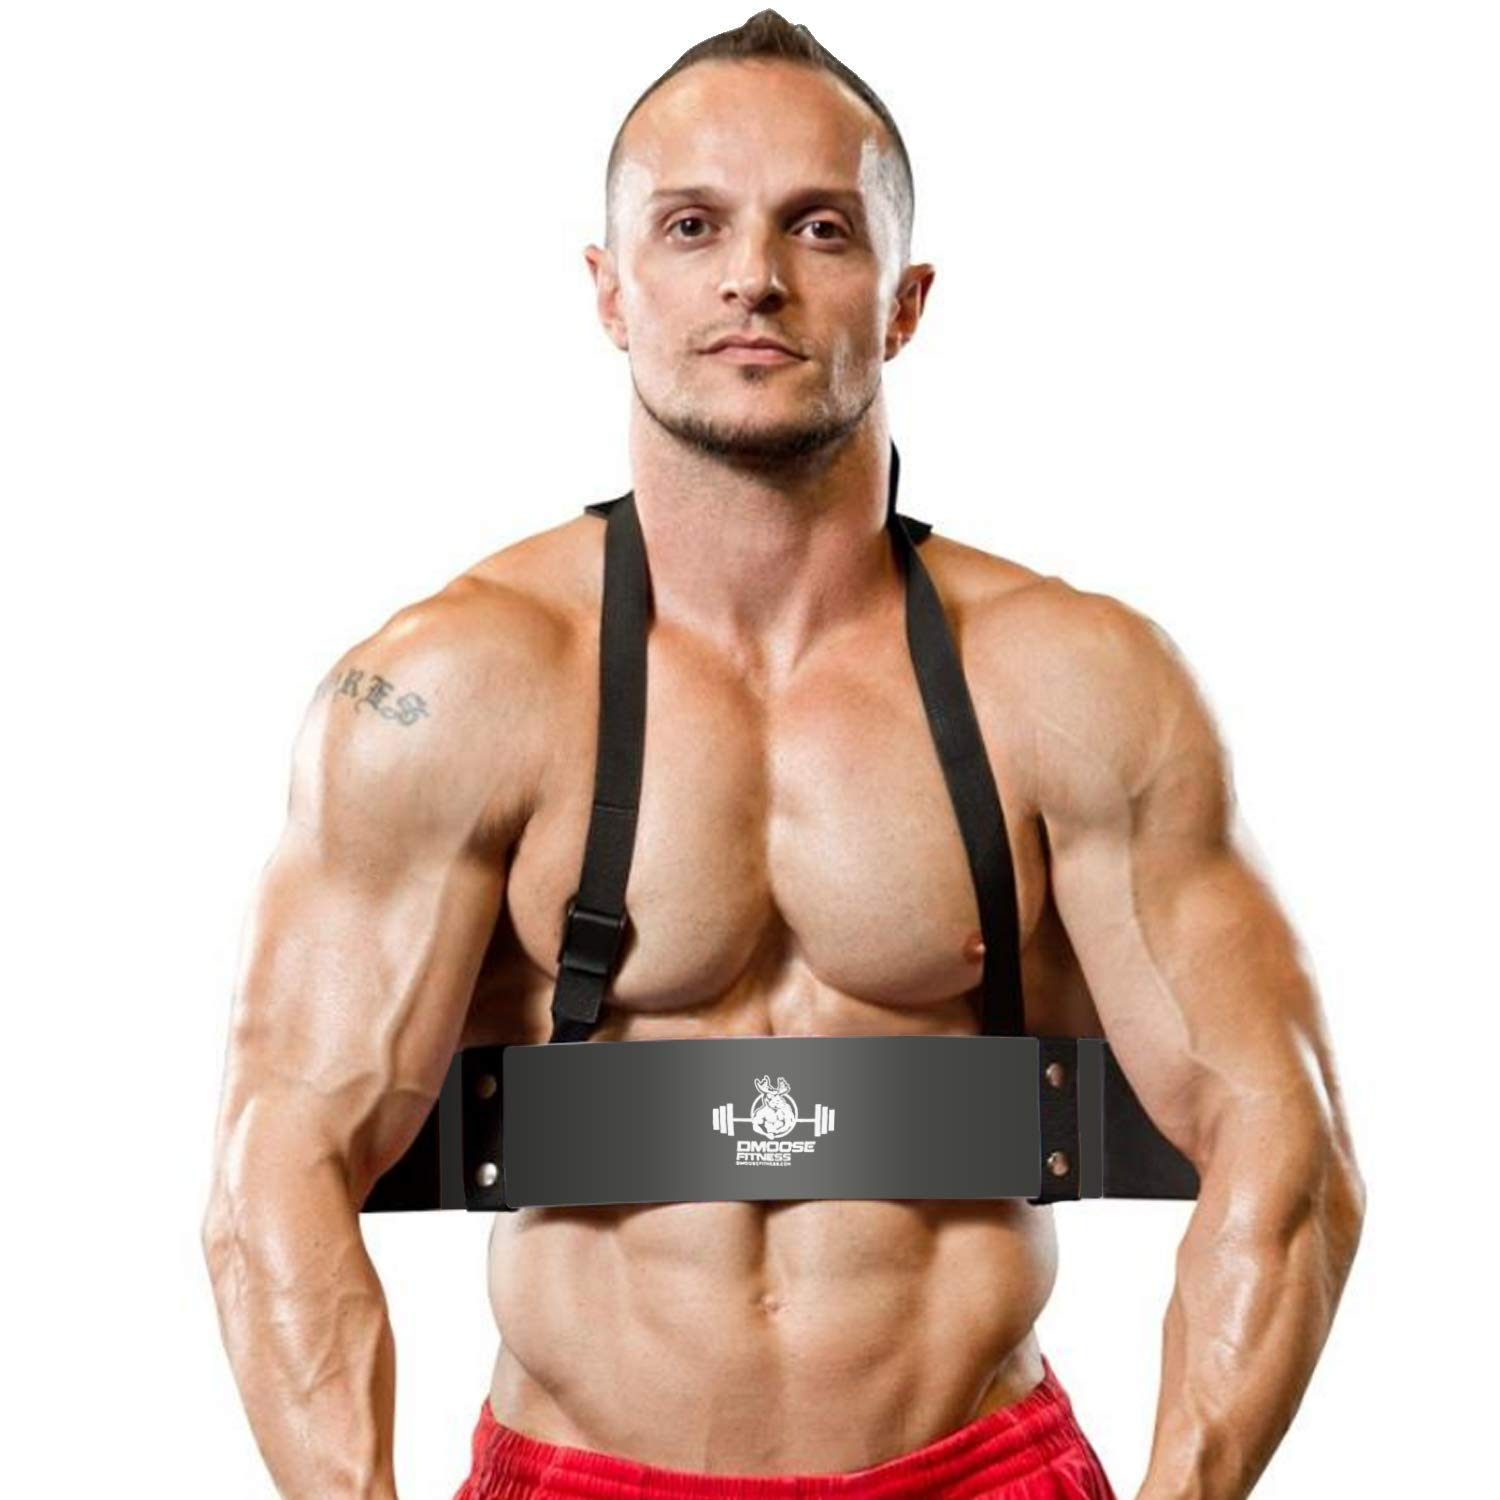 Premium Grade Bodybuilding Bicep Isolator DMoose Fitness Arm Curl Blaster Thick Gauge Aluminum Improve Definition /& Muscle Strength in Your Arms Robust Rivets Contoured /& Adjustable